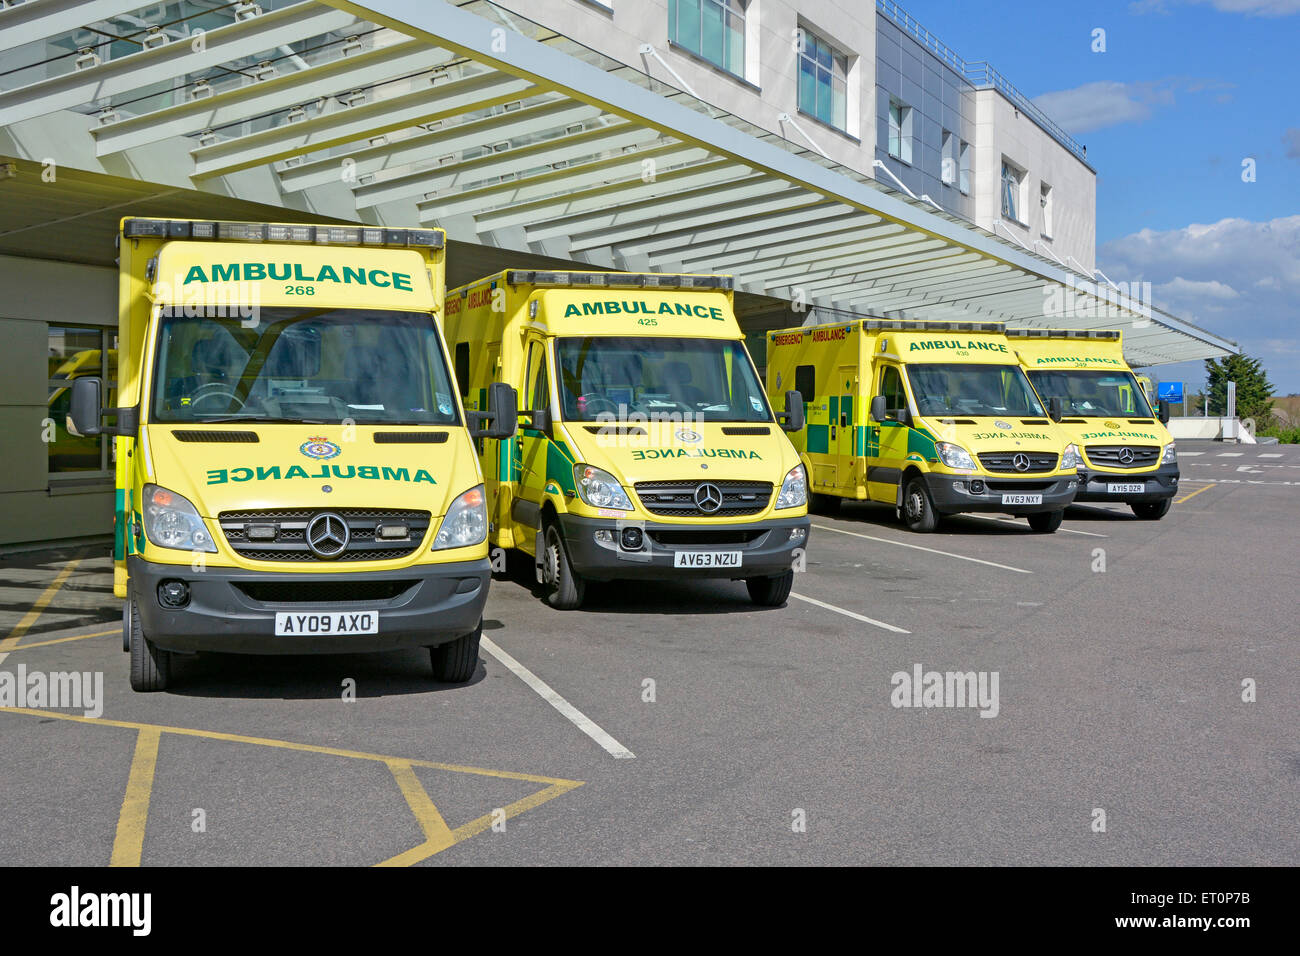 Mercedes Benz East Of England ambulance service NHS emergency SOS 999 ambulances parked at hospital accident & - Stock Image